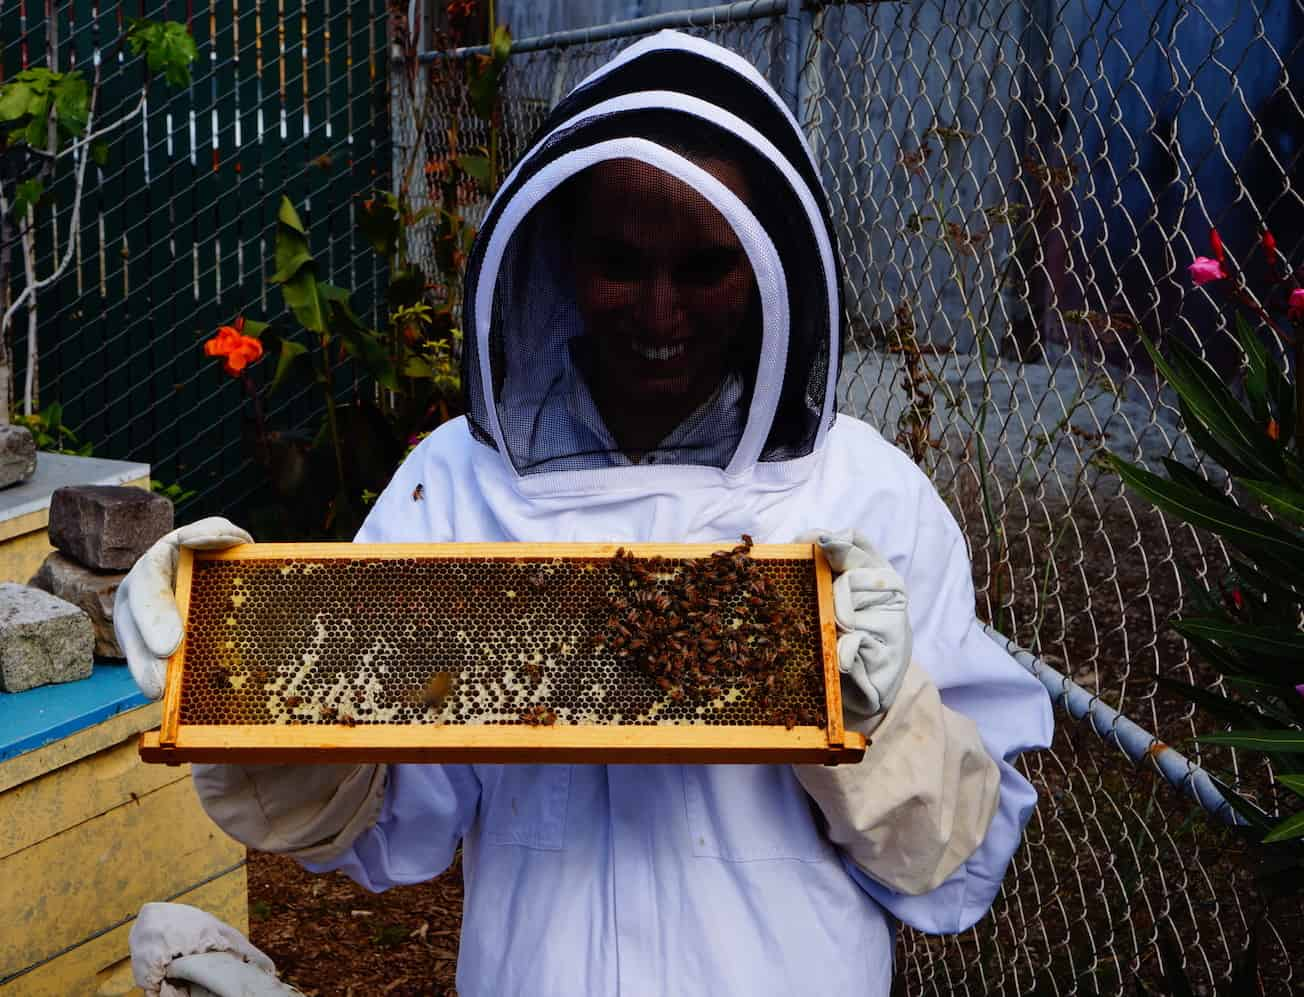 40 Before 40 - Beekeeping 1